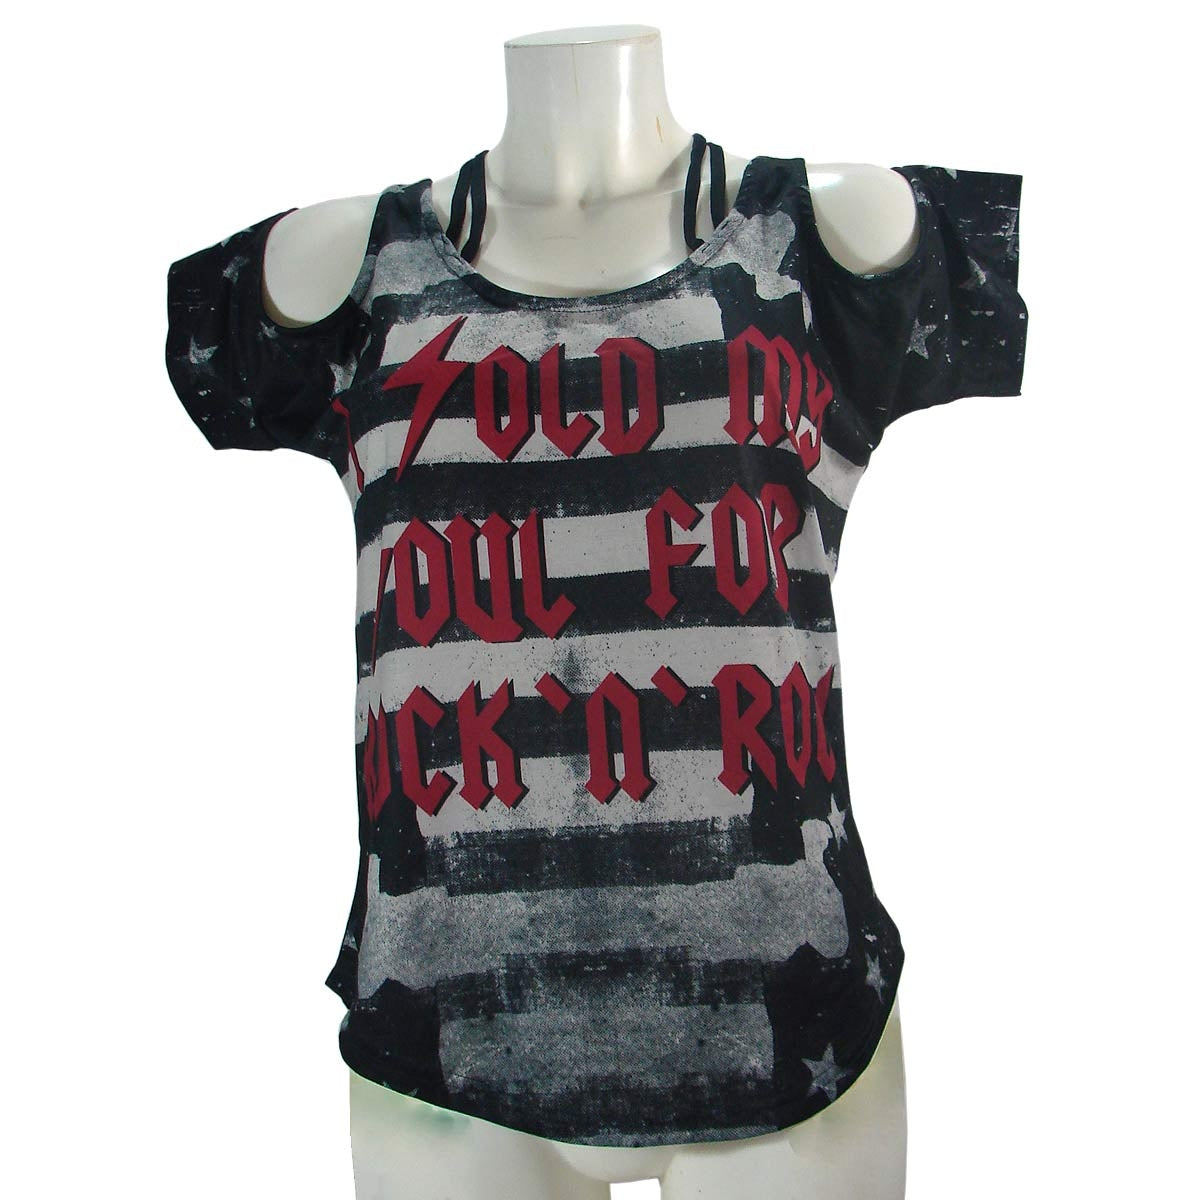 Too Fast Womens Top Shirt Sold My Soul Another Way of Life